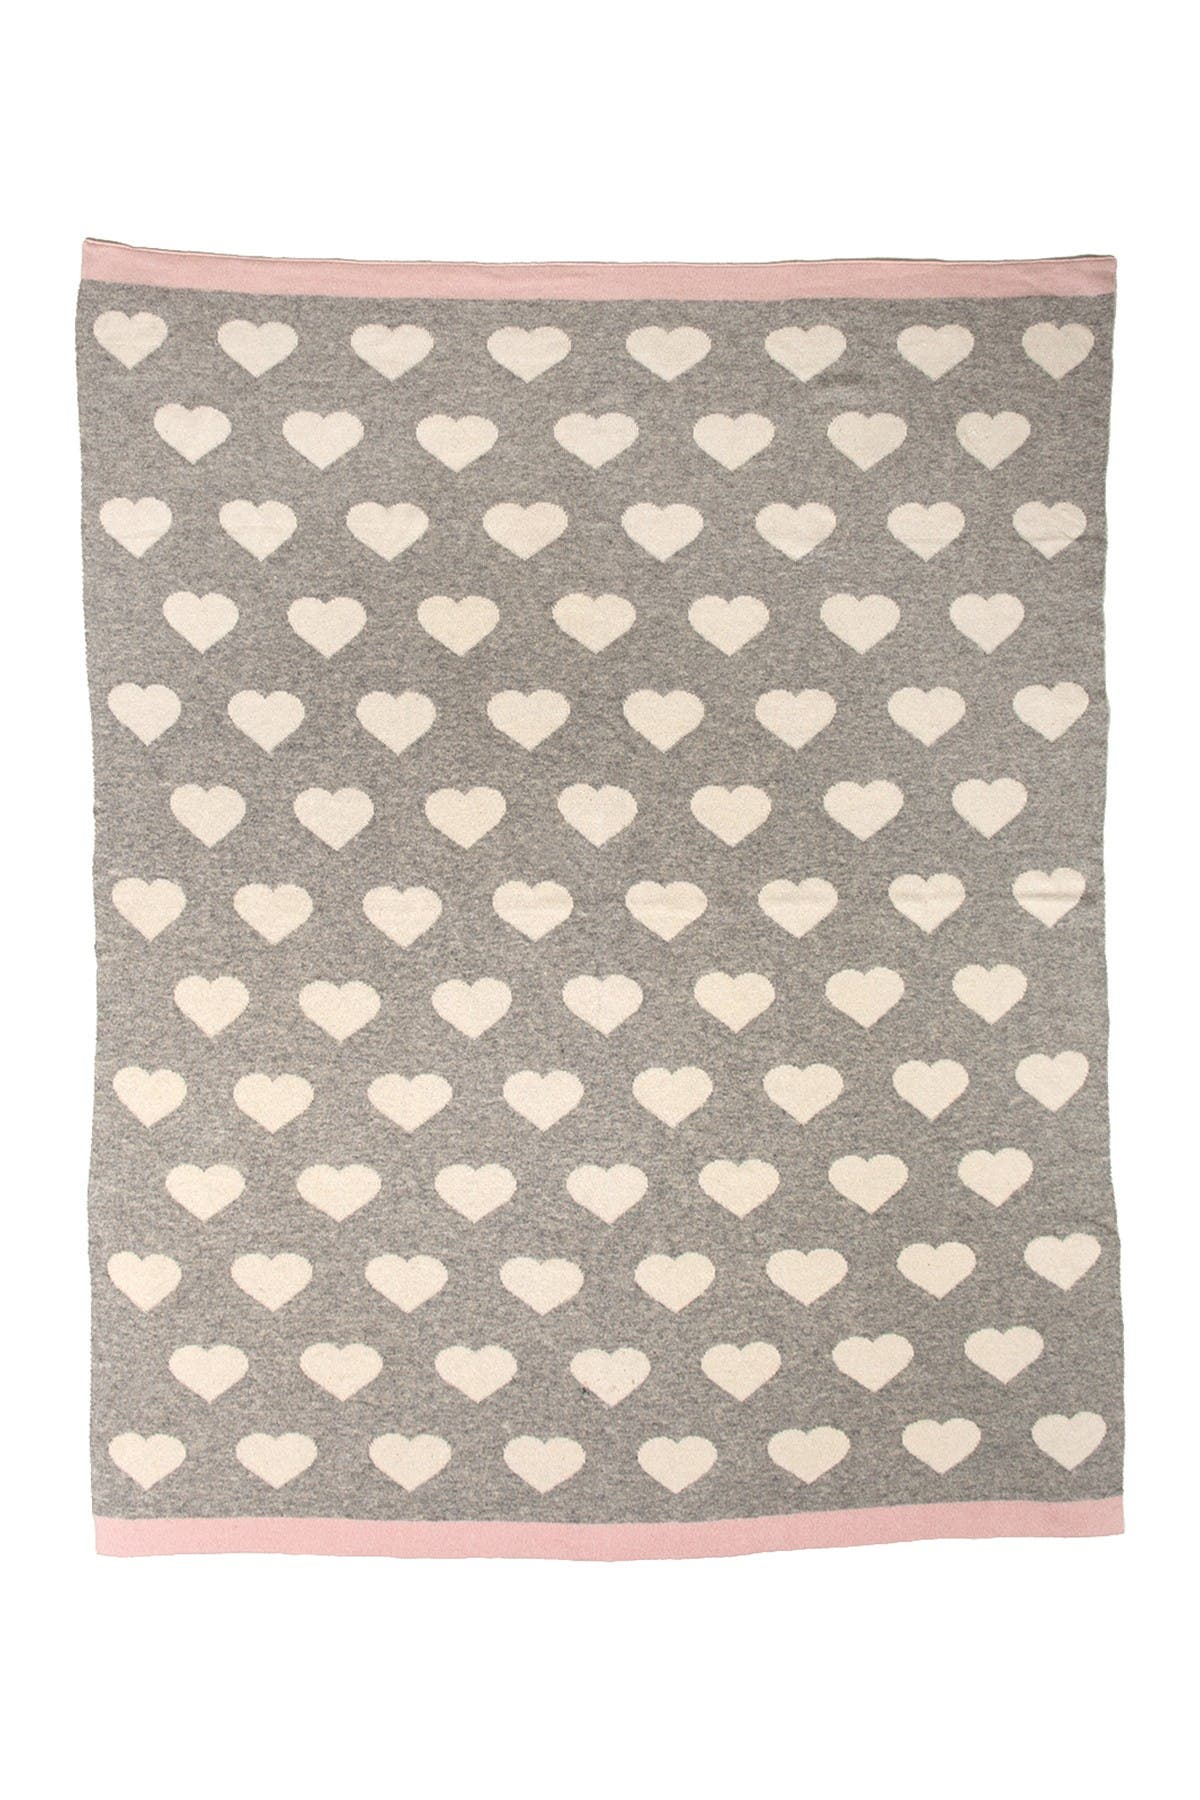 """Image of Parkland Collection Heartcloud Transitional Light Grey Knitted 32"""" x 40"""" Baby Blanket"""